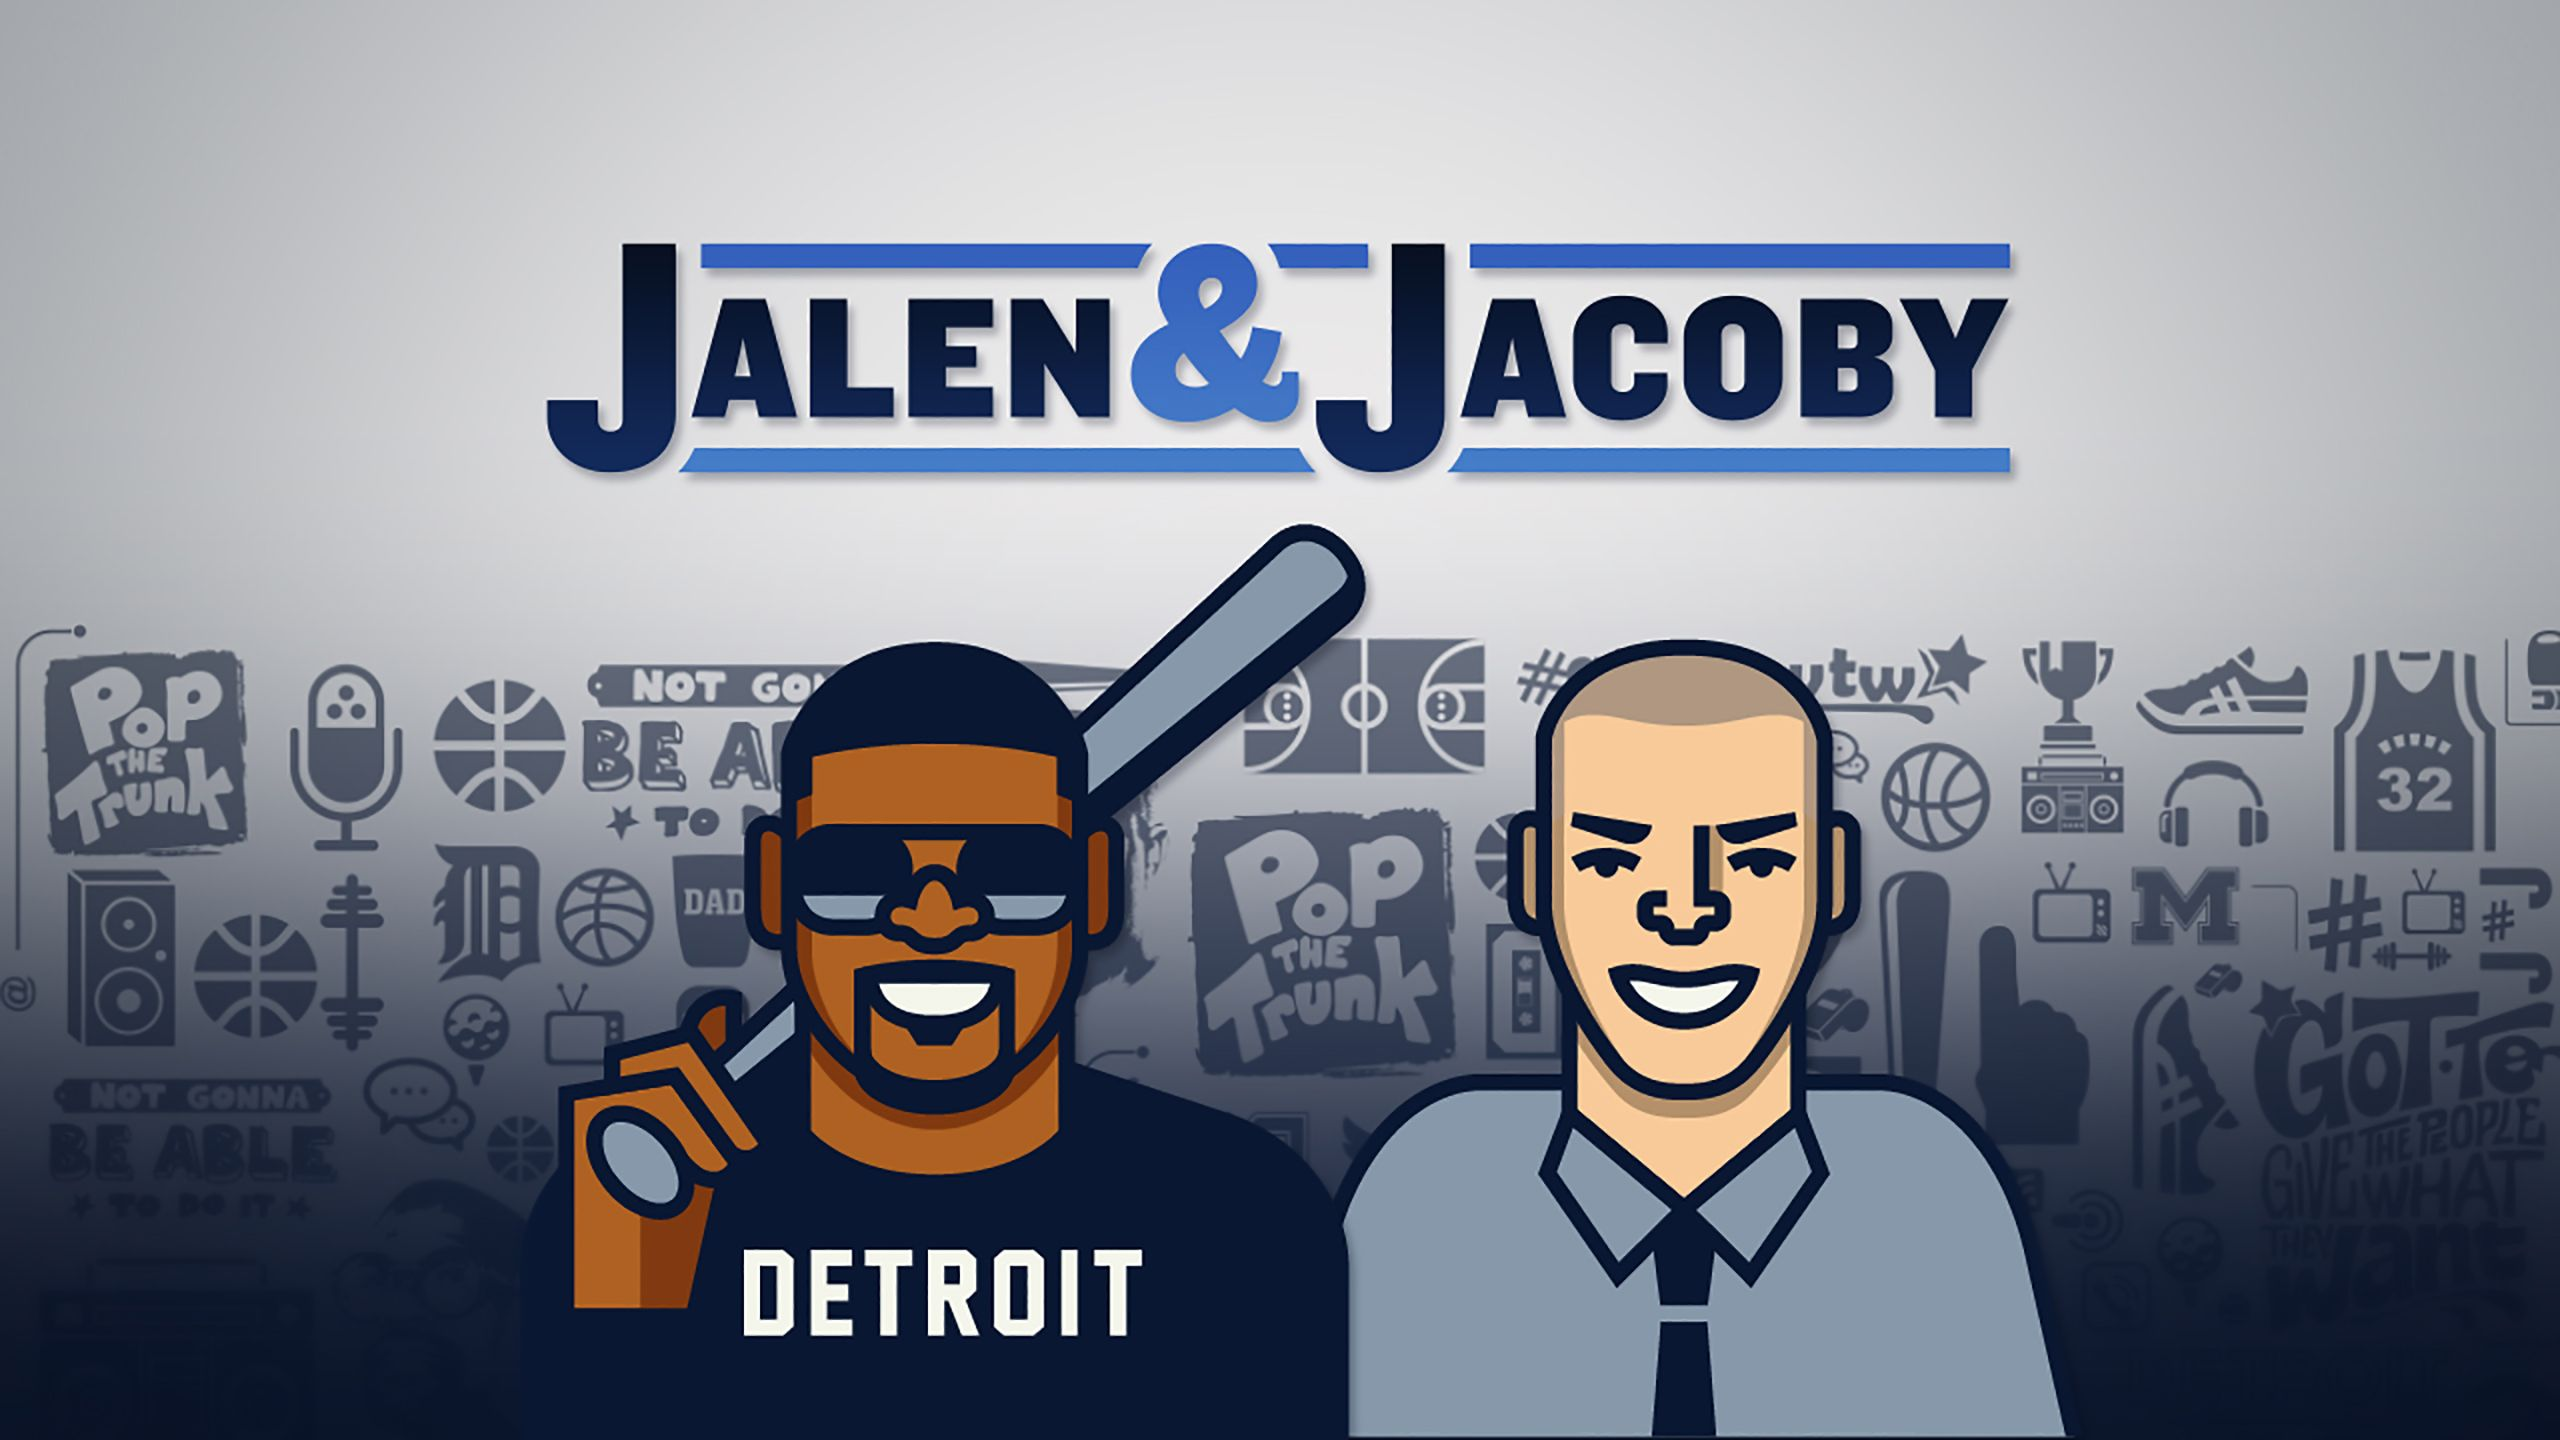 Wed, 2/21 - Jalen & Jacoby